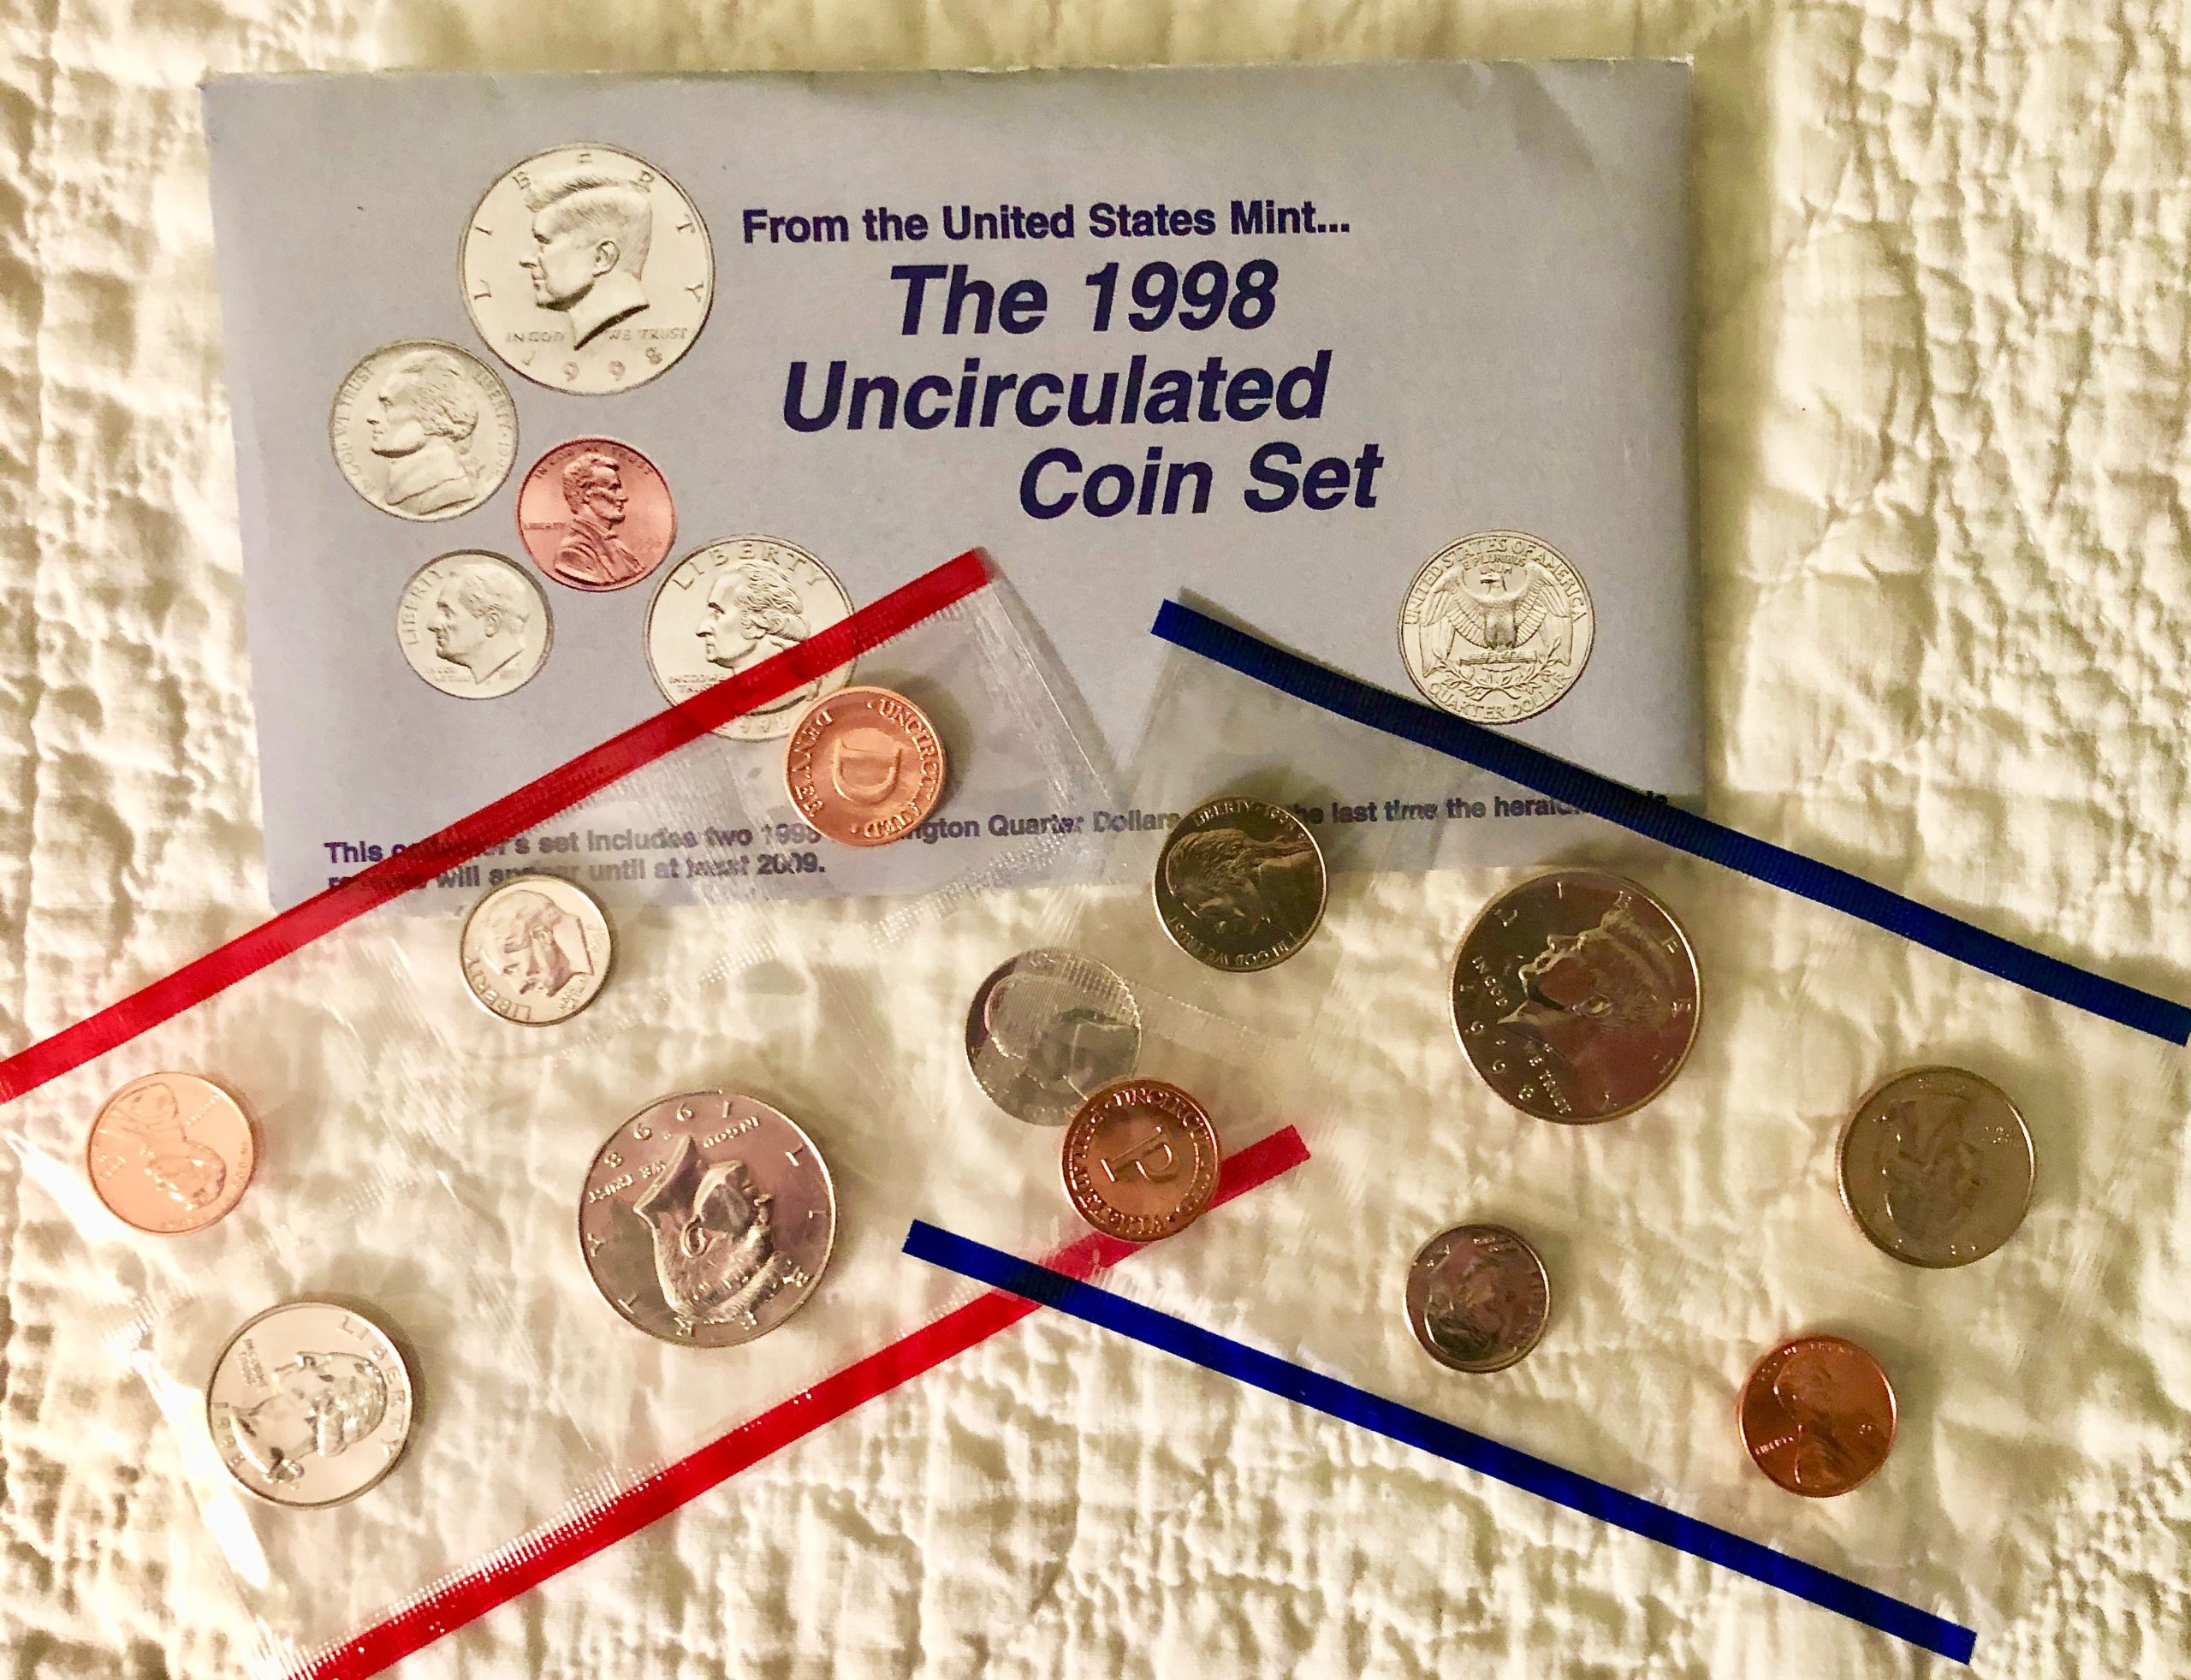 Item HG 17 - 1998 US Mint Uncirculated Coin Set of 10 Coins